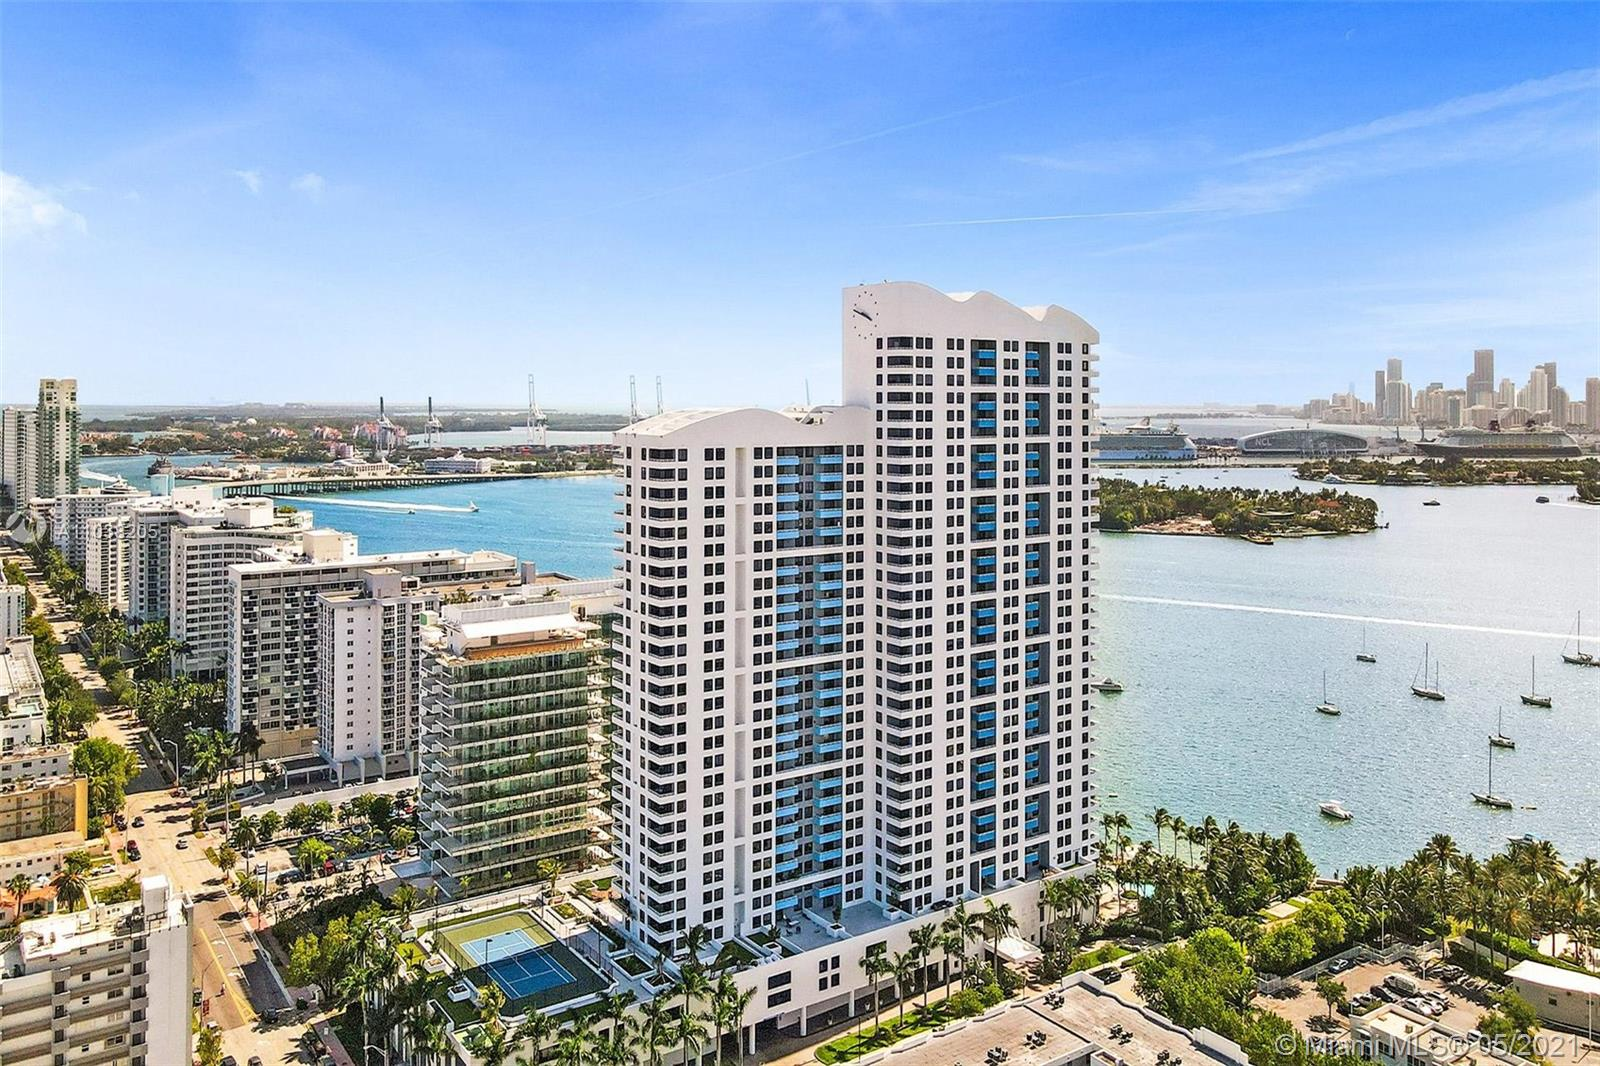 Welcome to Waverly - Unit 2303! Don't miss out on Gorgeous 1/1 on High Floor at The Waverly South Beach! Featuring panoramic views from the Ocean to the Bay. Enjoy breathtaking Biscayne Bay sunsets on the spacious & private balcony! Renovated unit with modern ceramic floors, bright kitchen cabinets, and stainless steel appliances. Brand new full-size washer and dryer. Includes extended cable tv package with DVR, premium channels, and high-speed internet. The Waverly offers extensive amenities including a gorgeous lagoon pool, Jacuzzi, grill area, private bayview event room, fully-equipped gym, business center, 24-hour concierge and security. Steps away from Lincoln Road, Sunset Harbor Shops, Flamingo Park, and the Beaches! **Special Assessments PAID IN FULL**